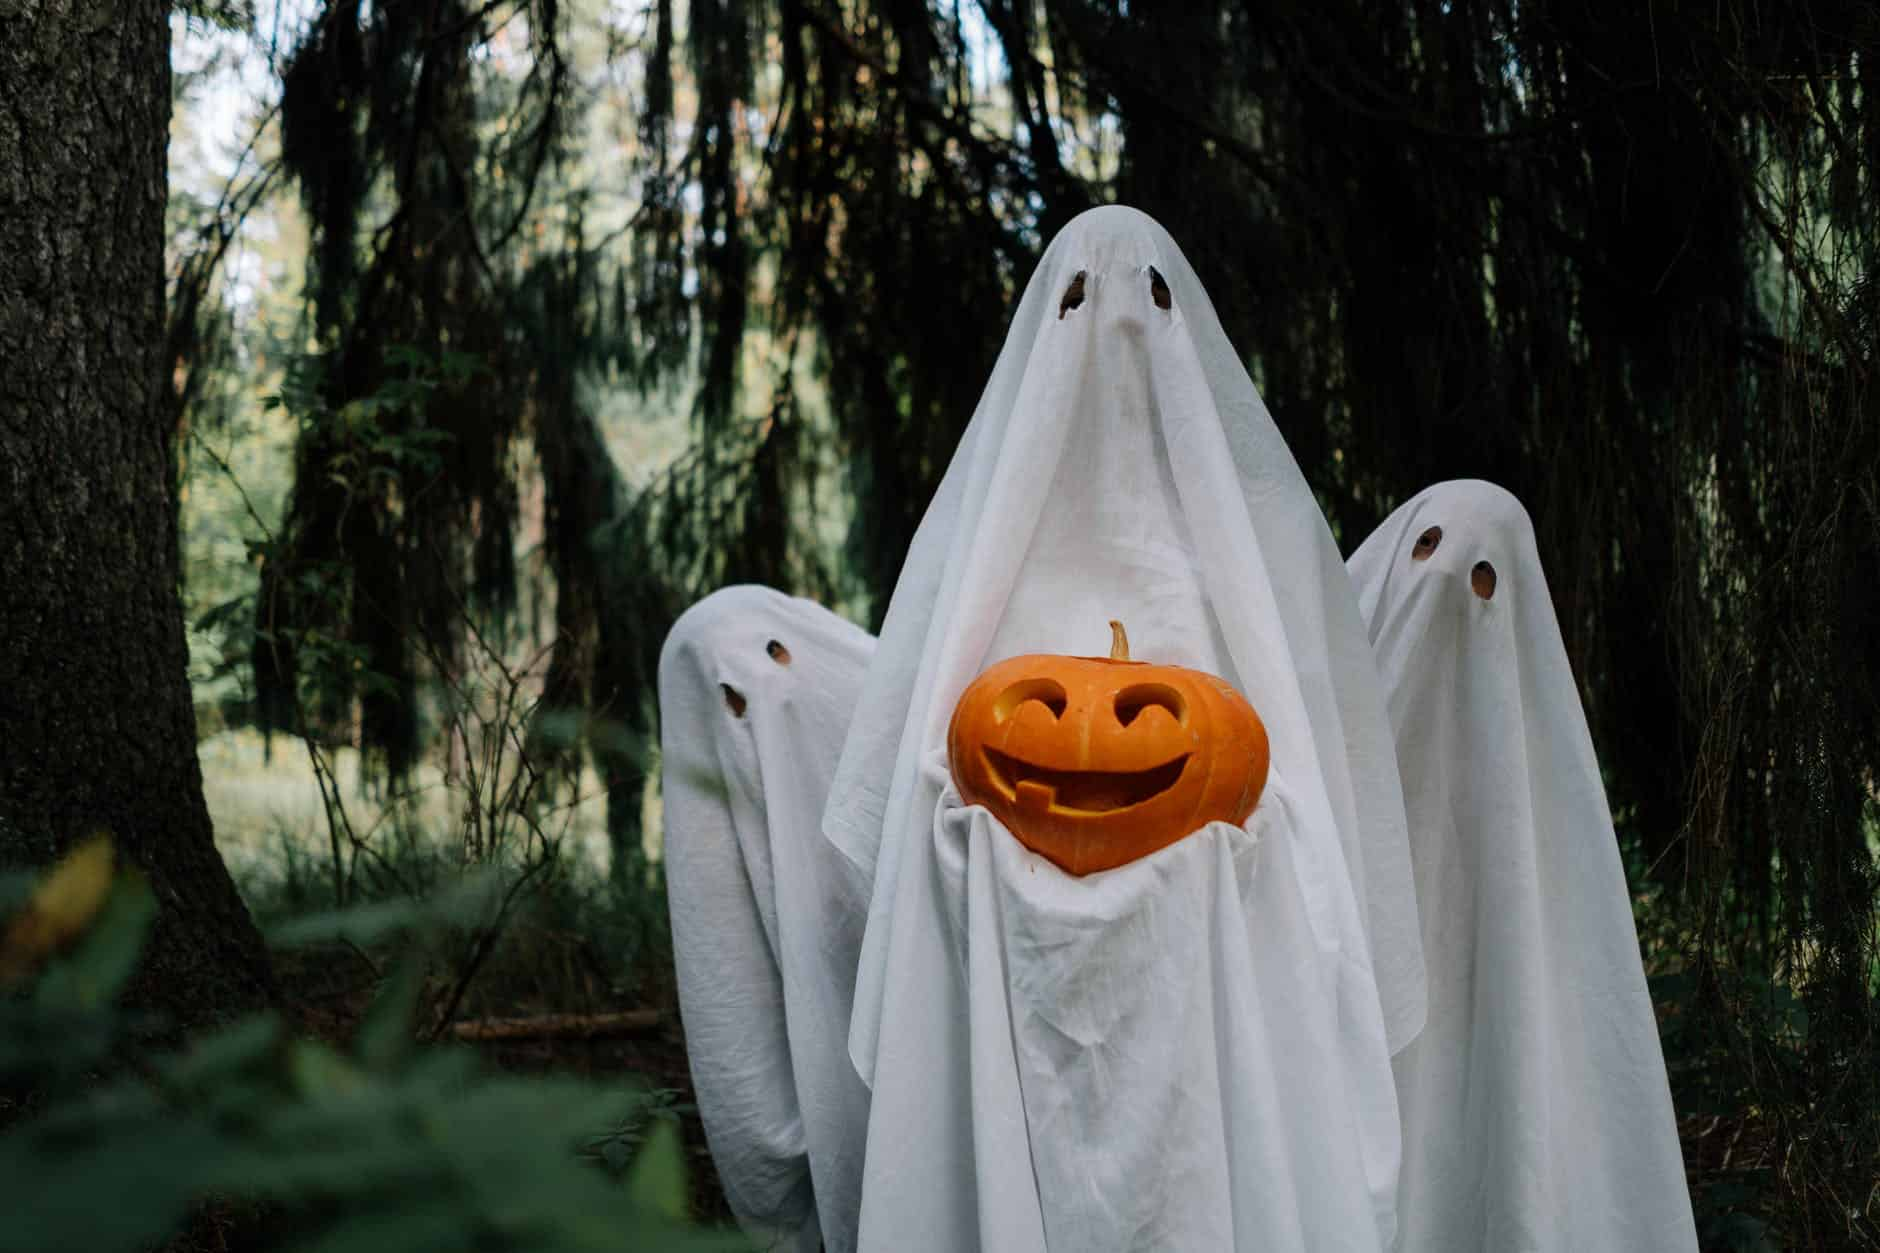 ghosts holding a carved pumpkin